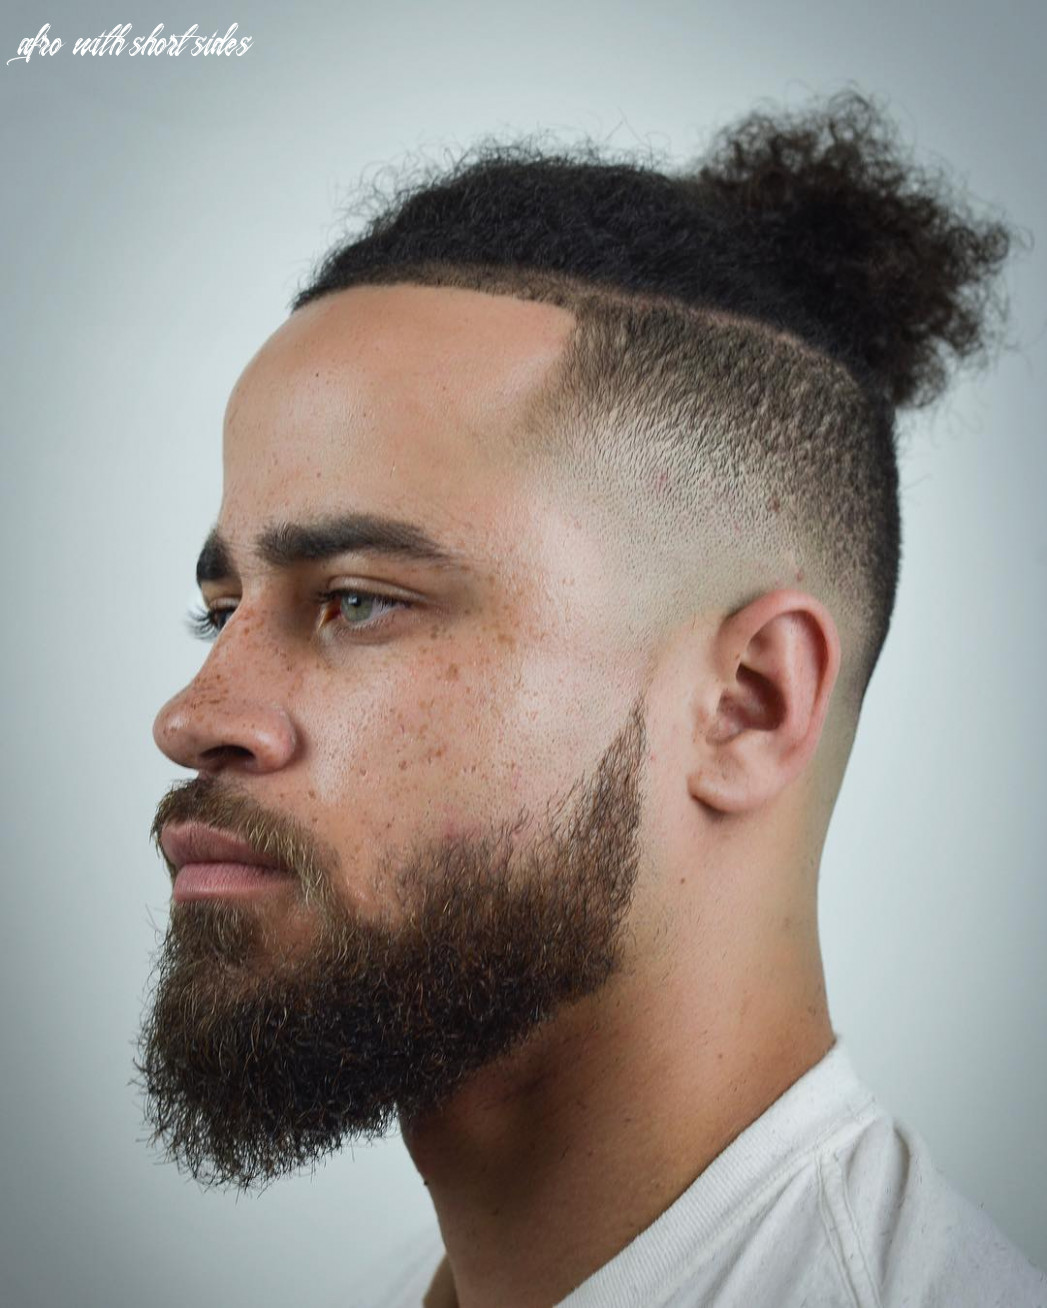 Top afro hairstyles for men in 12 (visual guide) afro with short sides